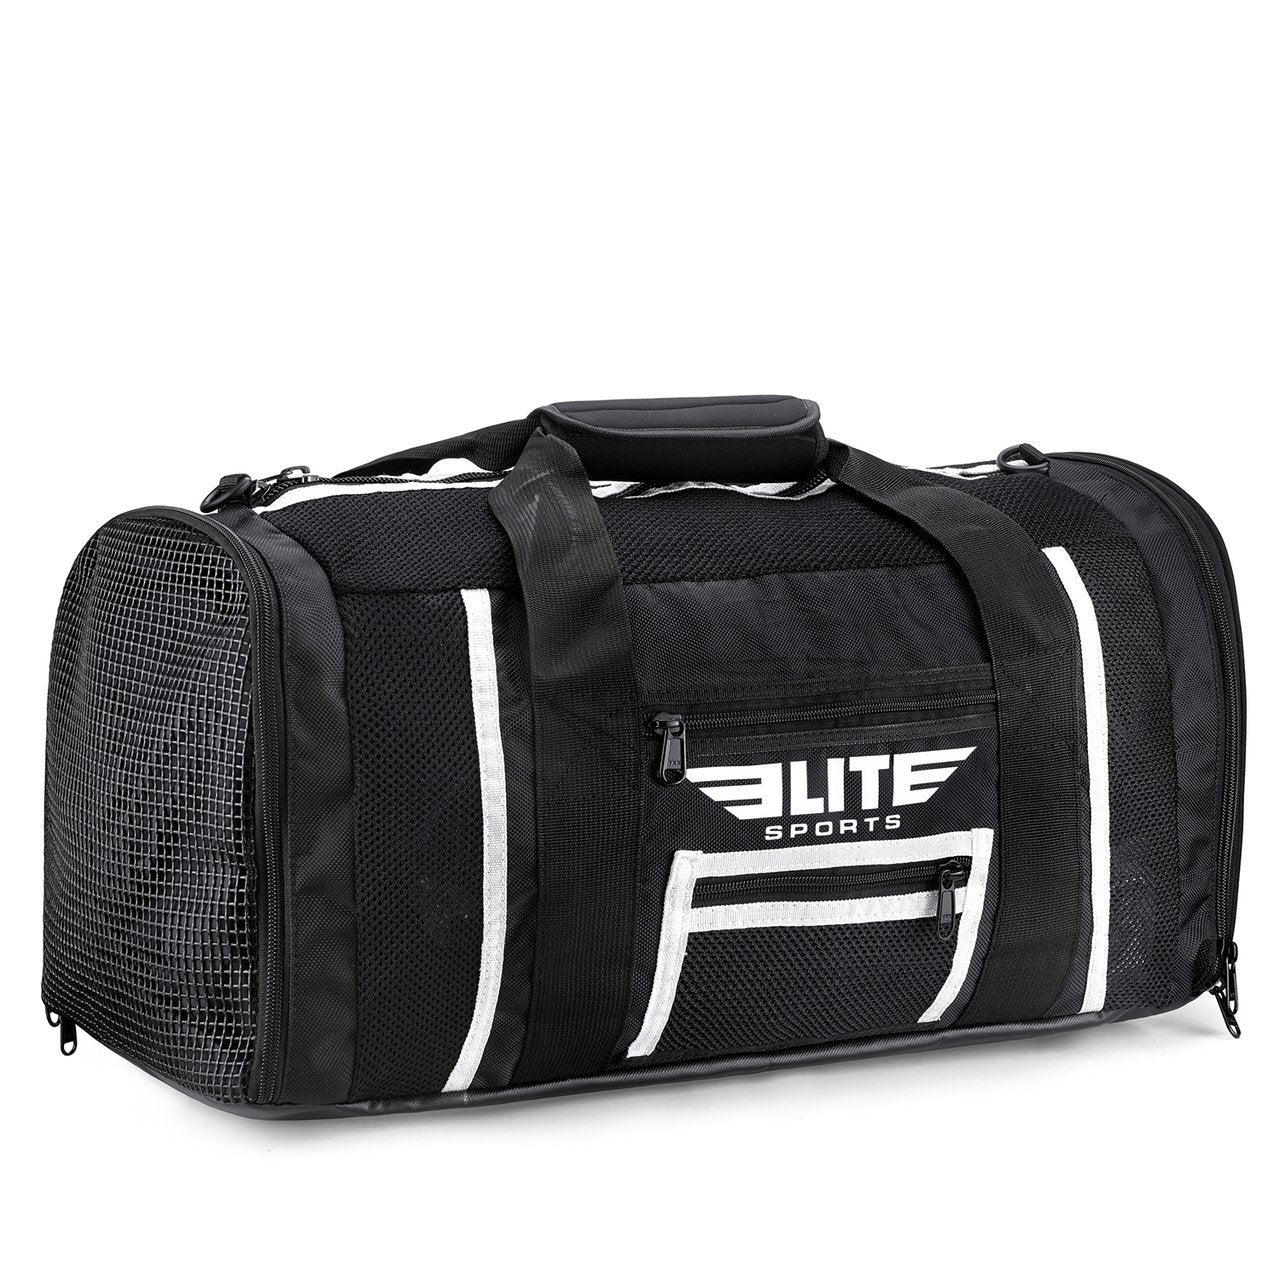 Load image into Gallery viewer, Elite Sports Mesh Black Large Crossfit Gear Gym Bag